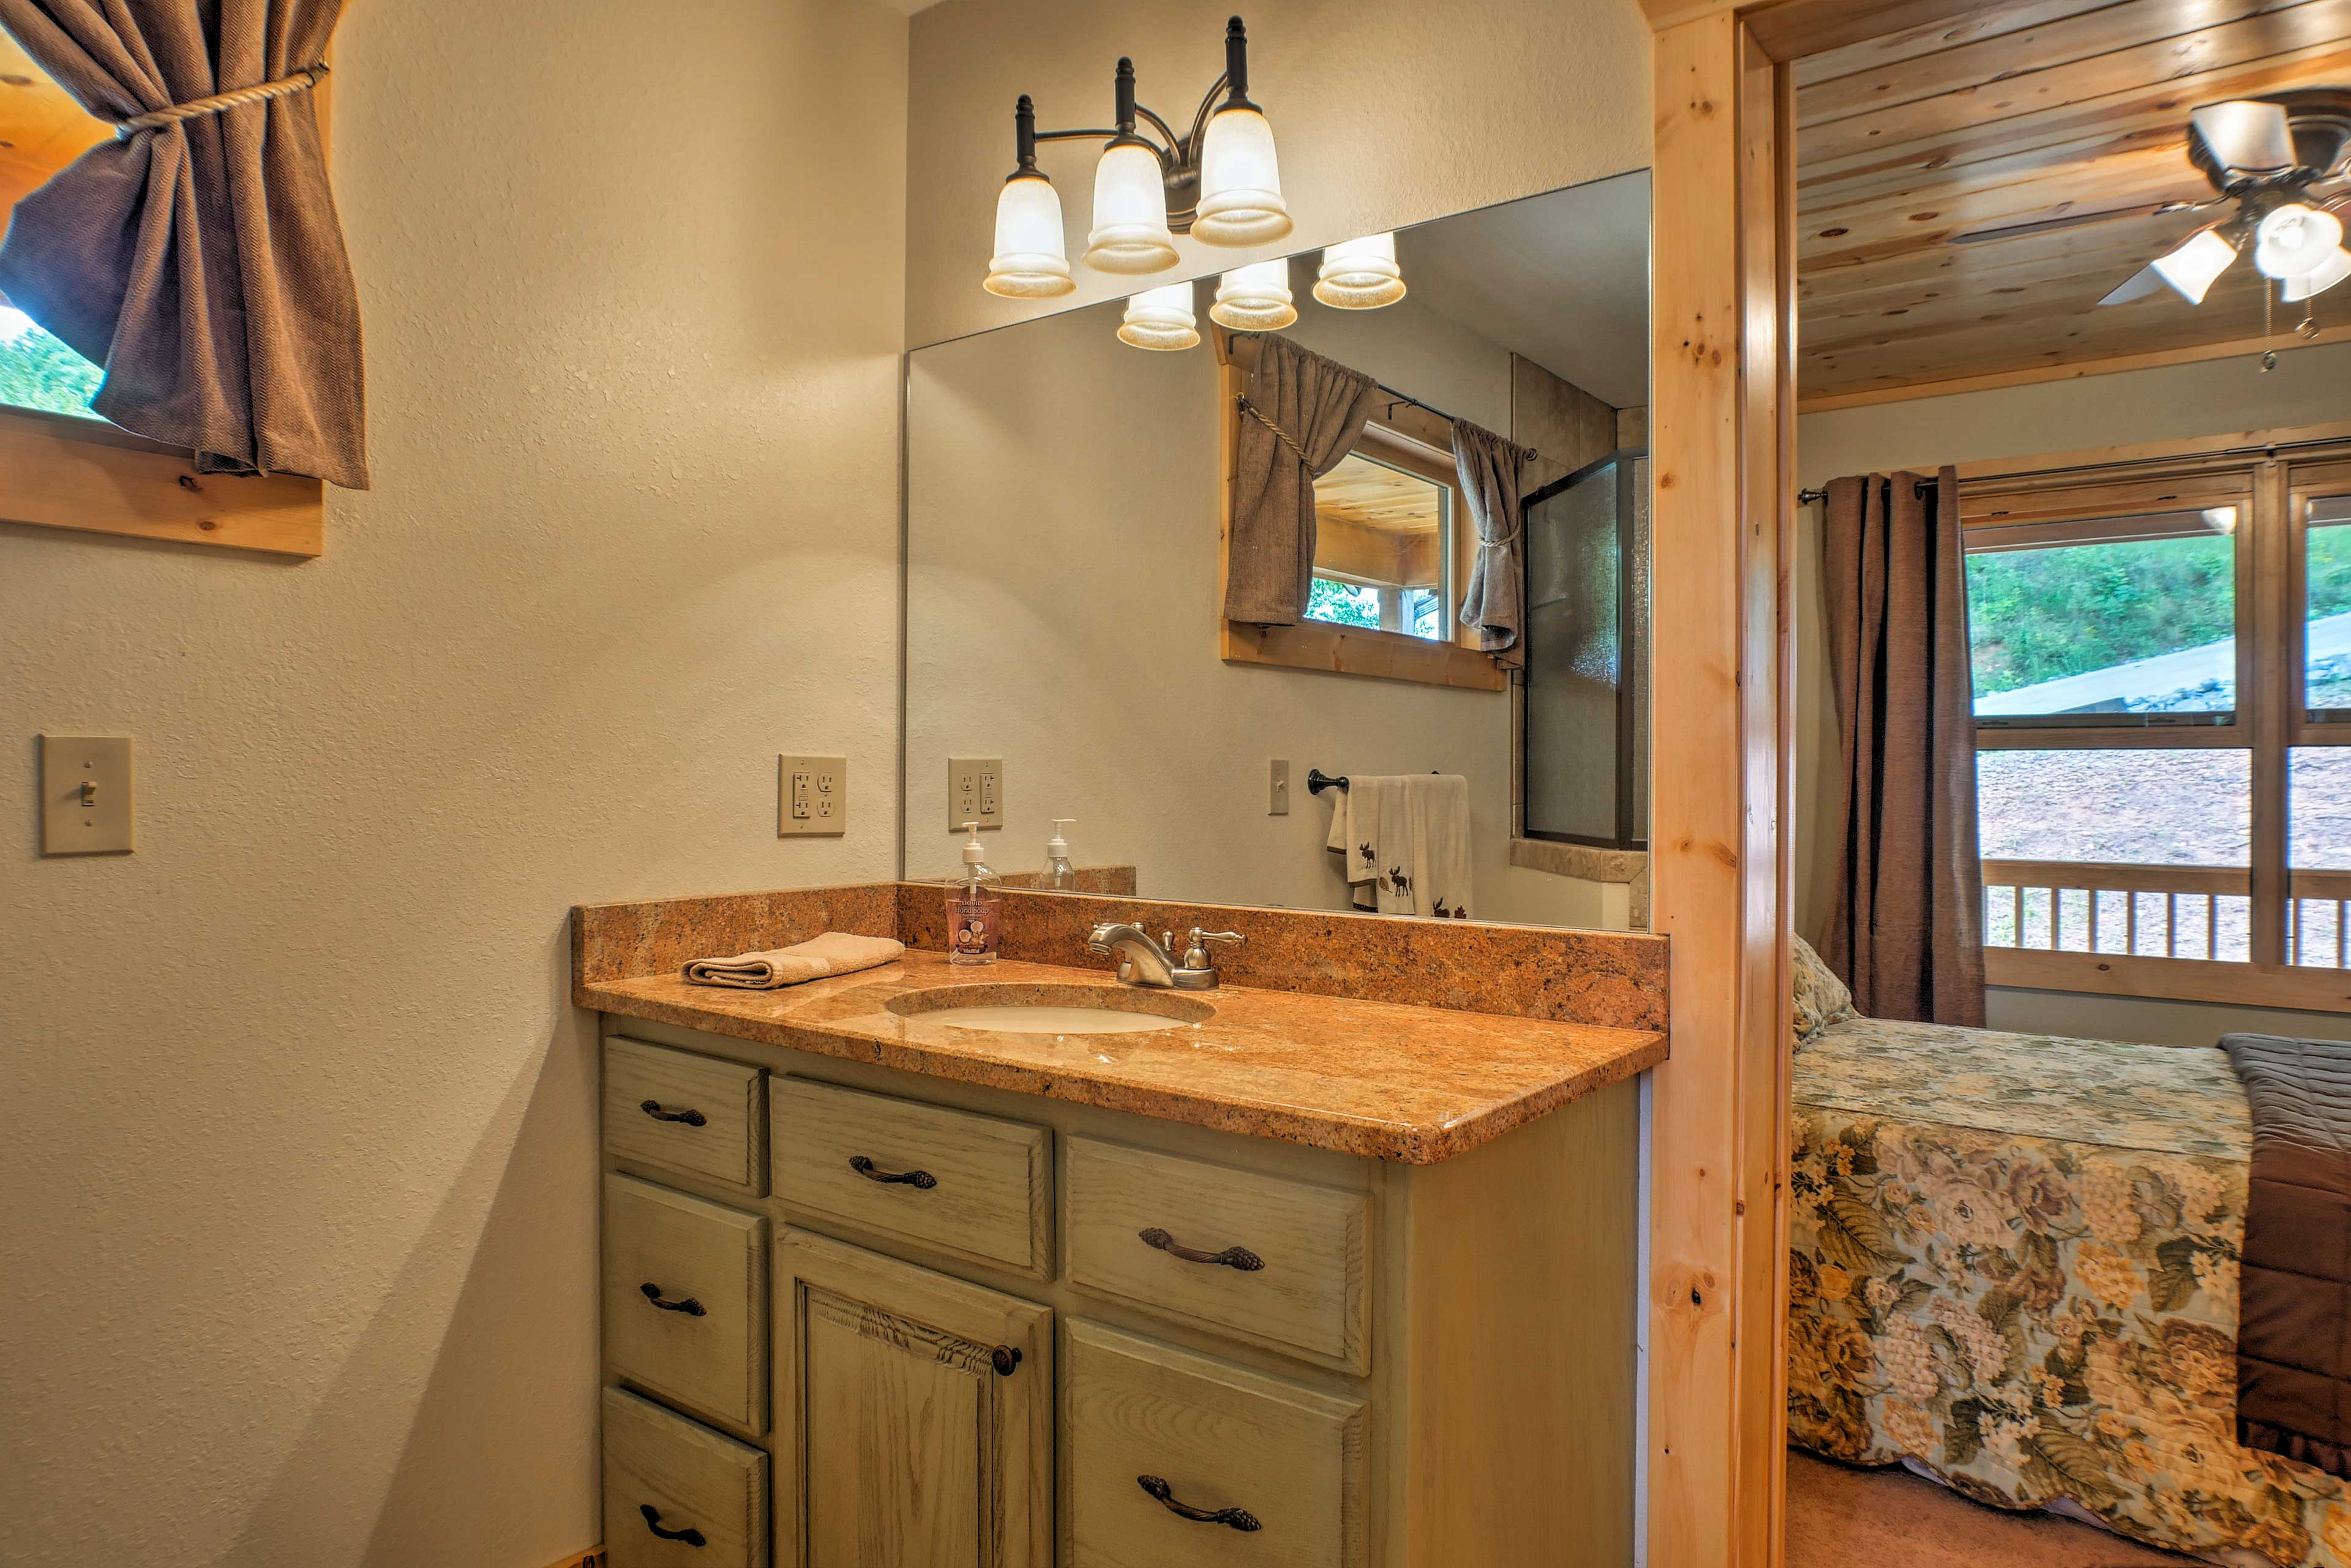 Get ready each day at the mirrored vanity.